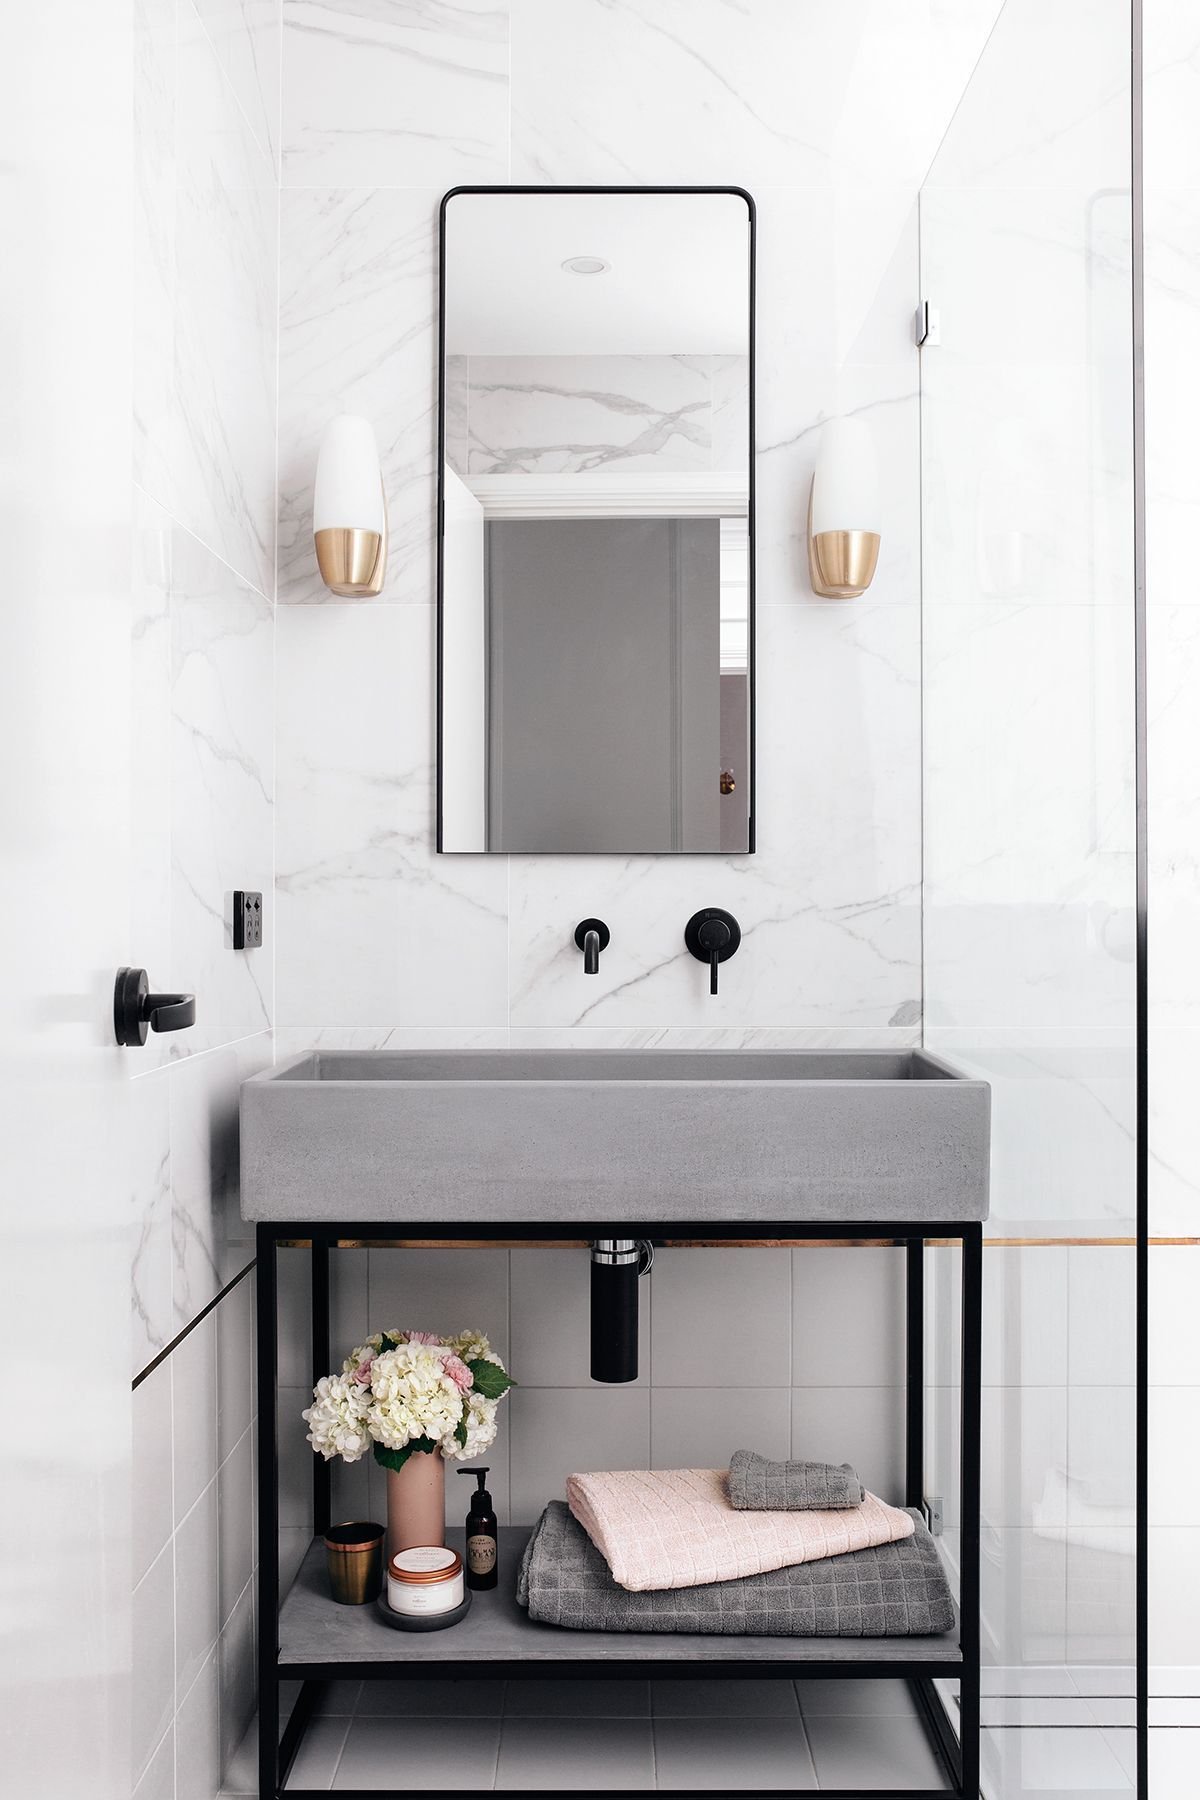 Nood Cos Trough Sink Vanity Set And Zia Mirror, Along